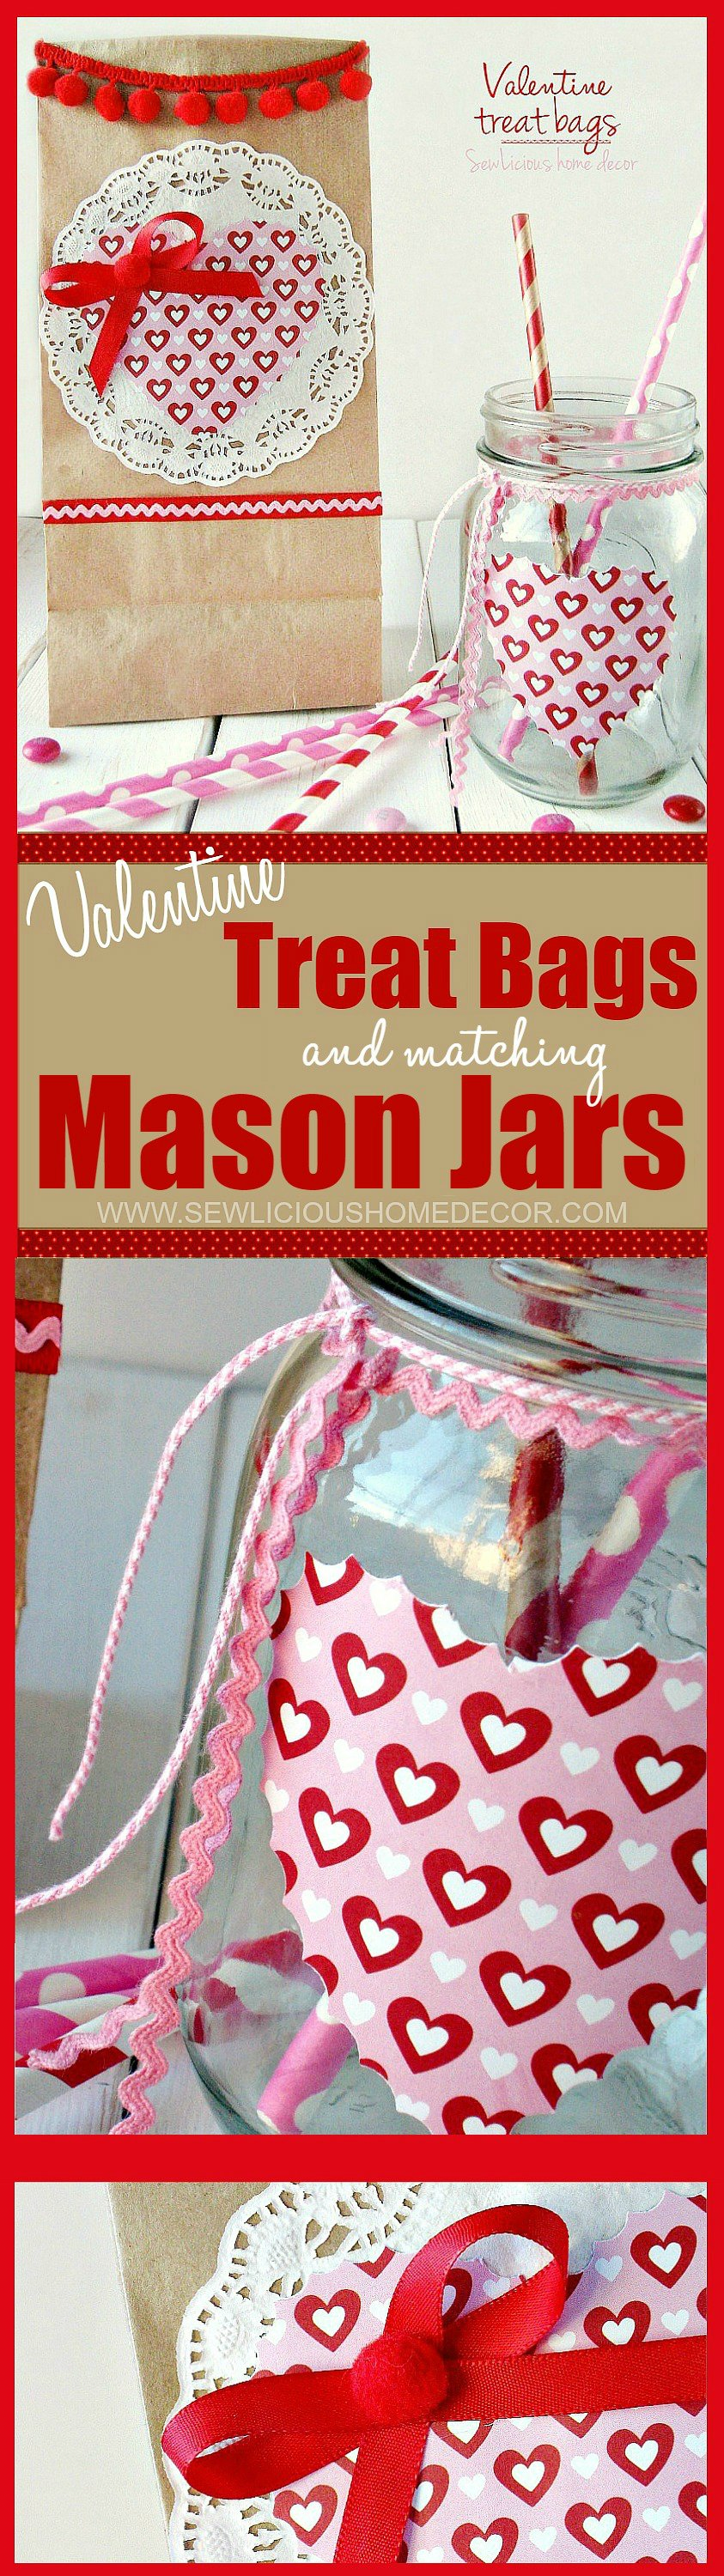 How To Make Valentine Treat Bags with Matching Mason Jars at sewlicioushomedecor.com